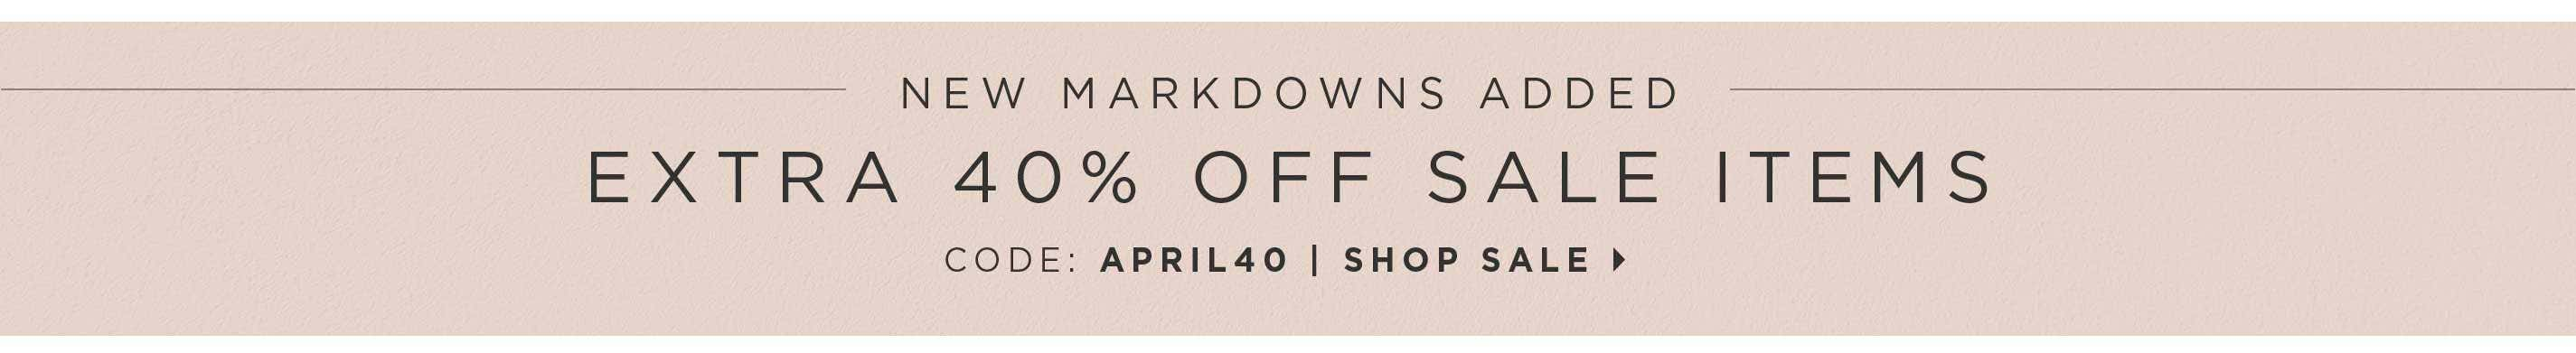 New Markdowns Added - Extra 40% off Sale Items - Code: APRIL40 - Shop Sale